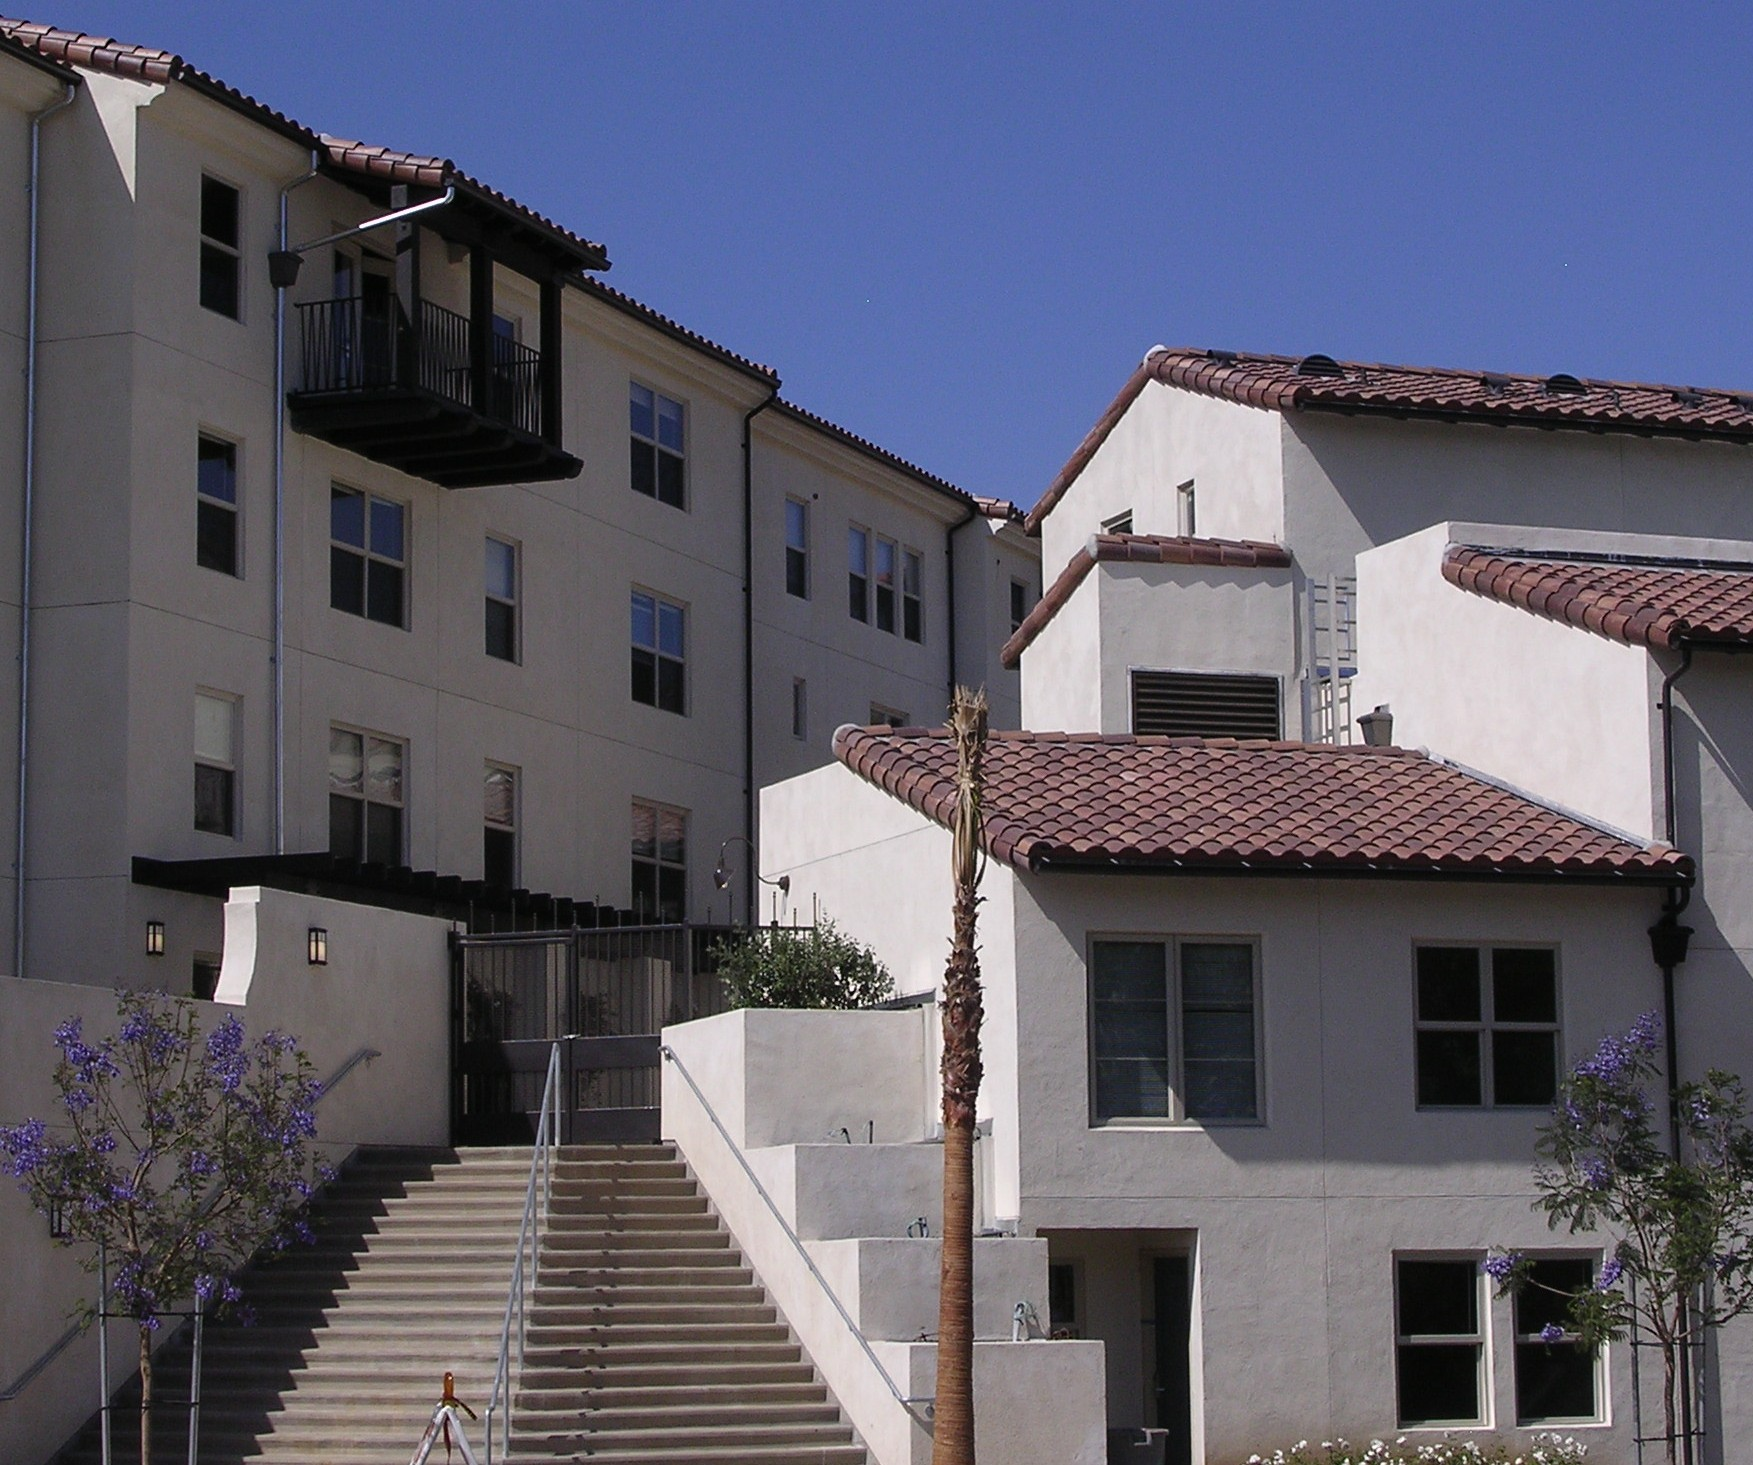 UCLA Campus Map: Sycamore Court Apartments; Sycamore Court